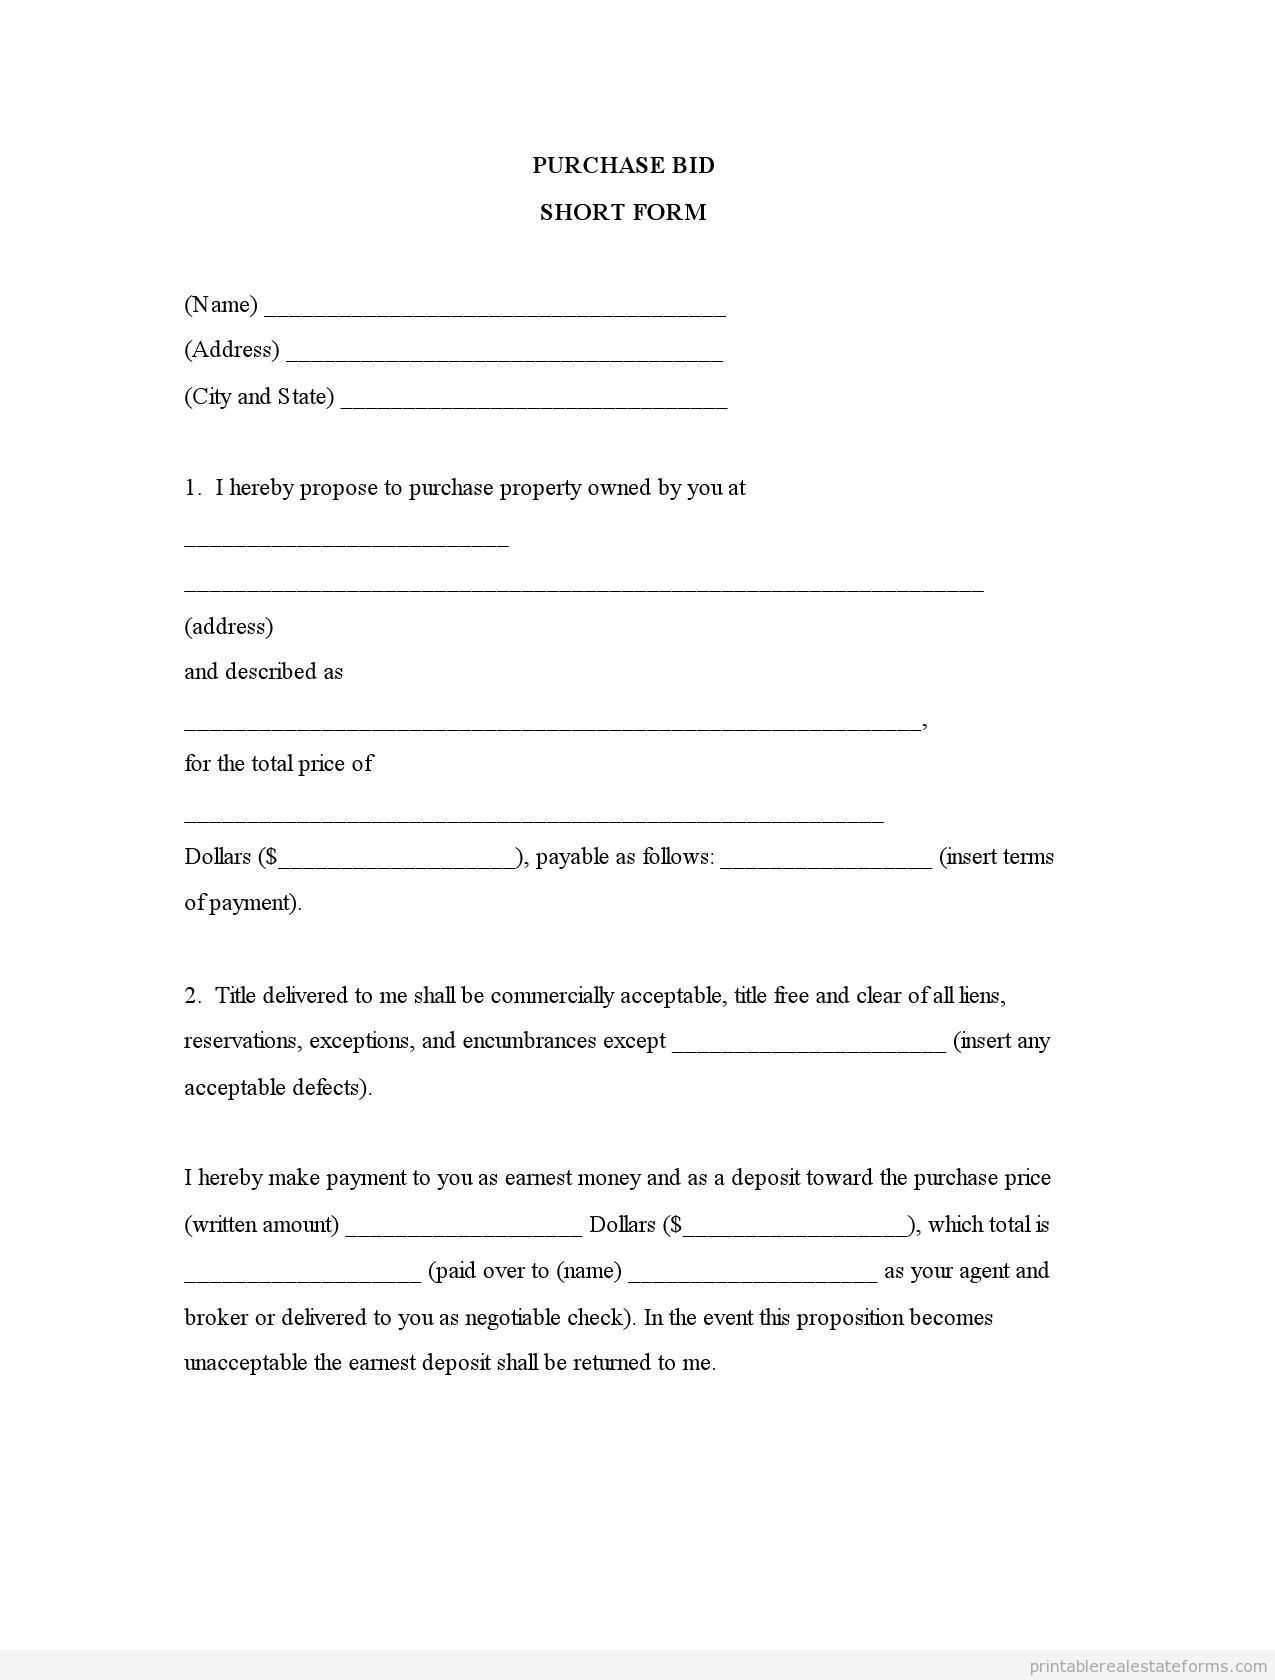 Sample Printable Purchase Bid Short Form Form  Printable Real